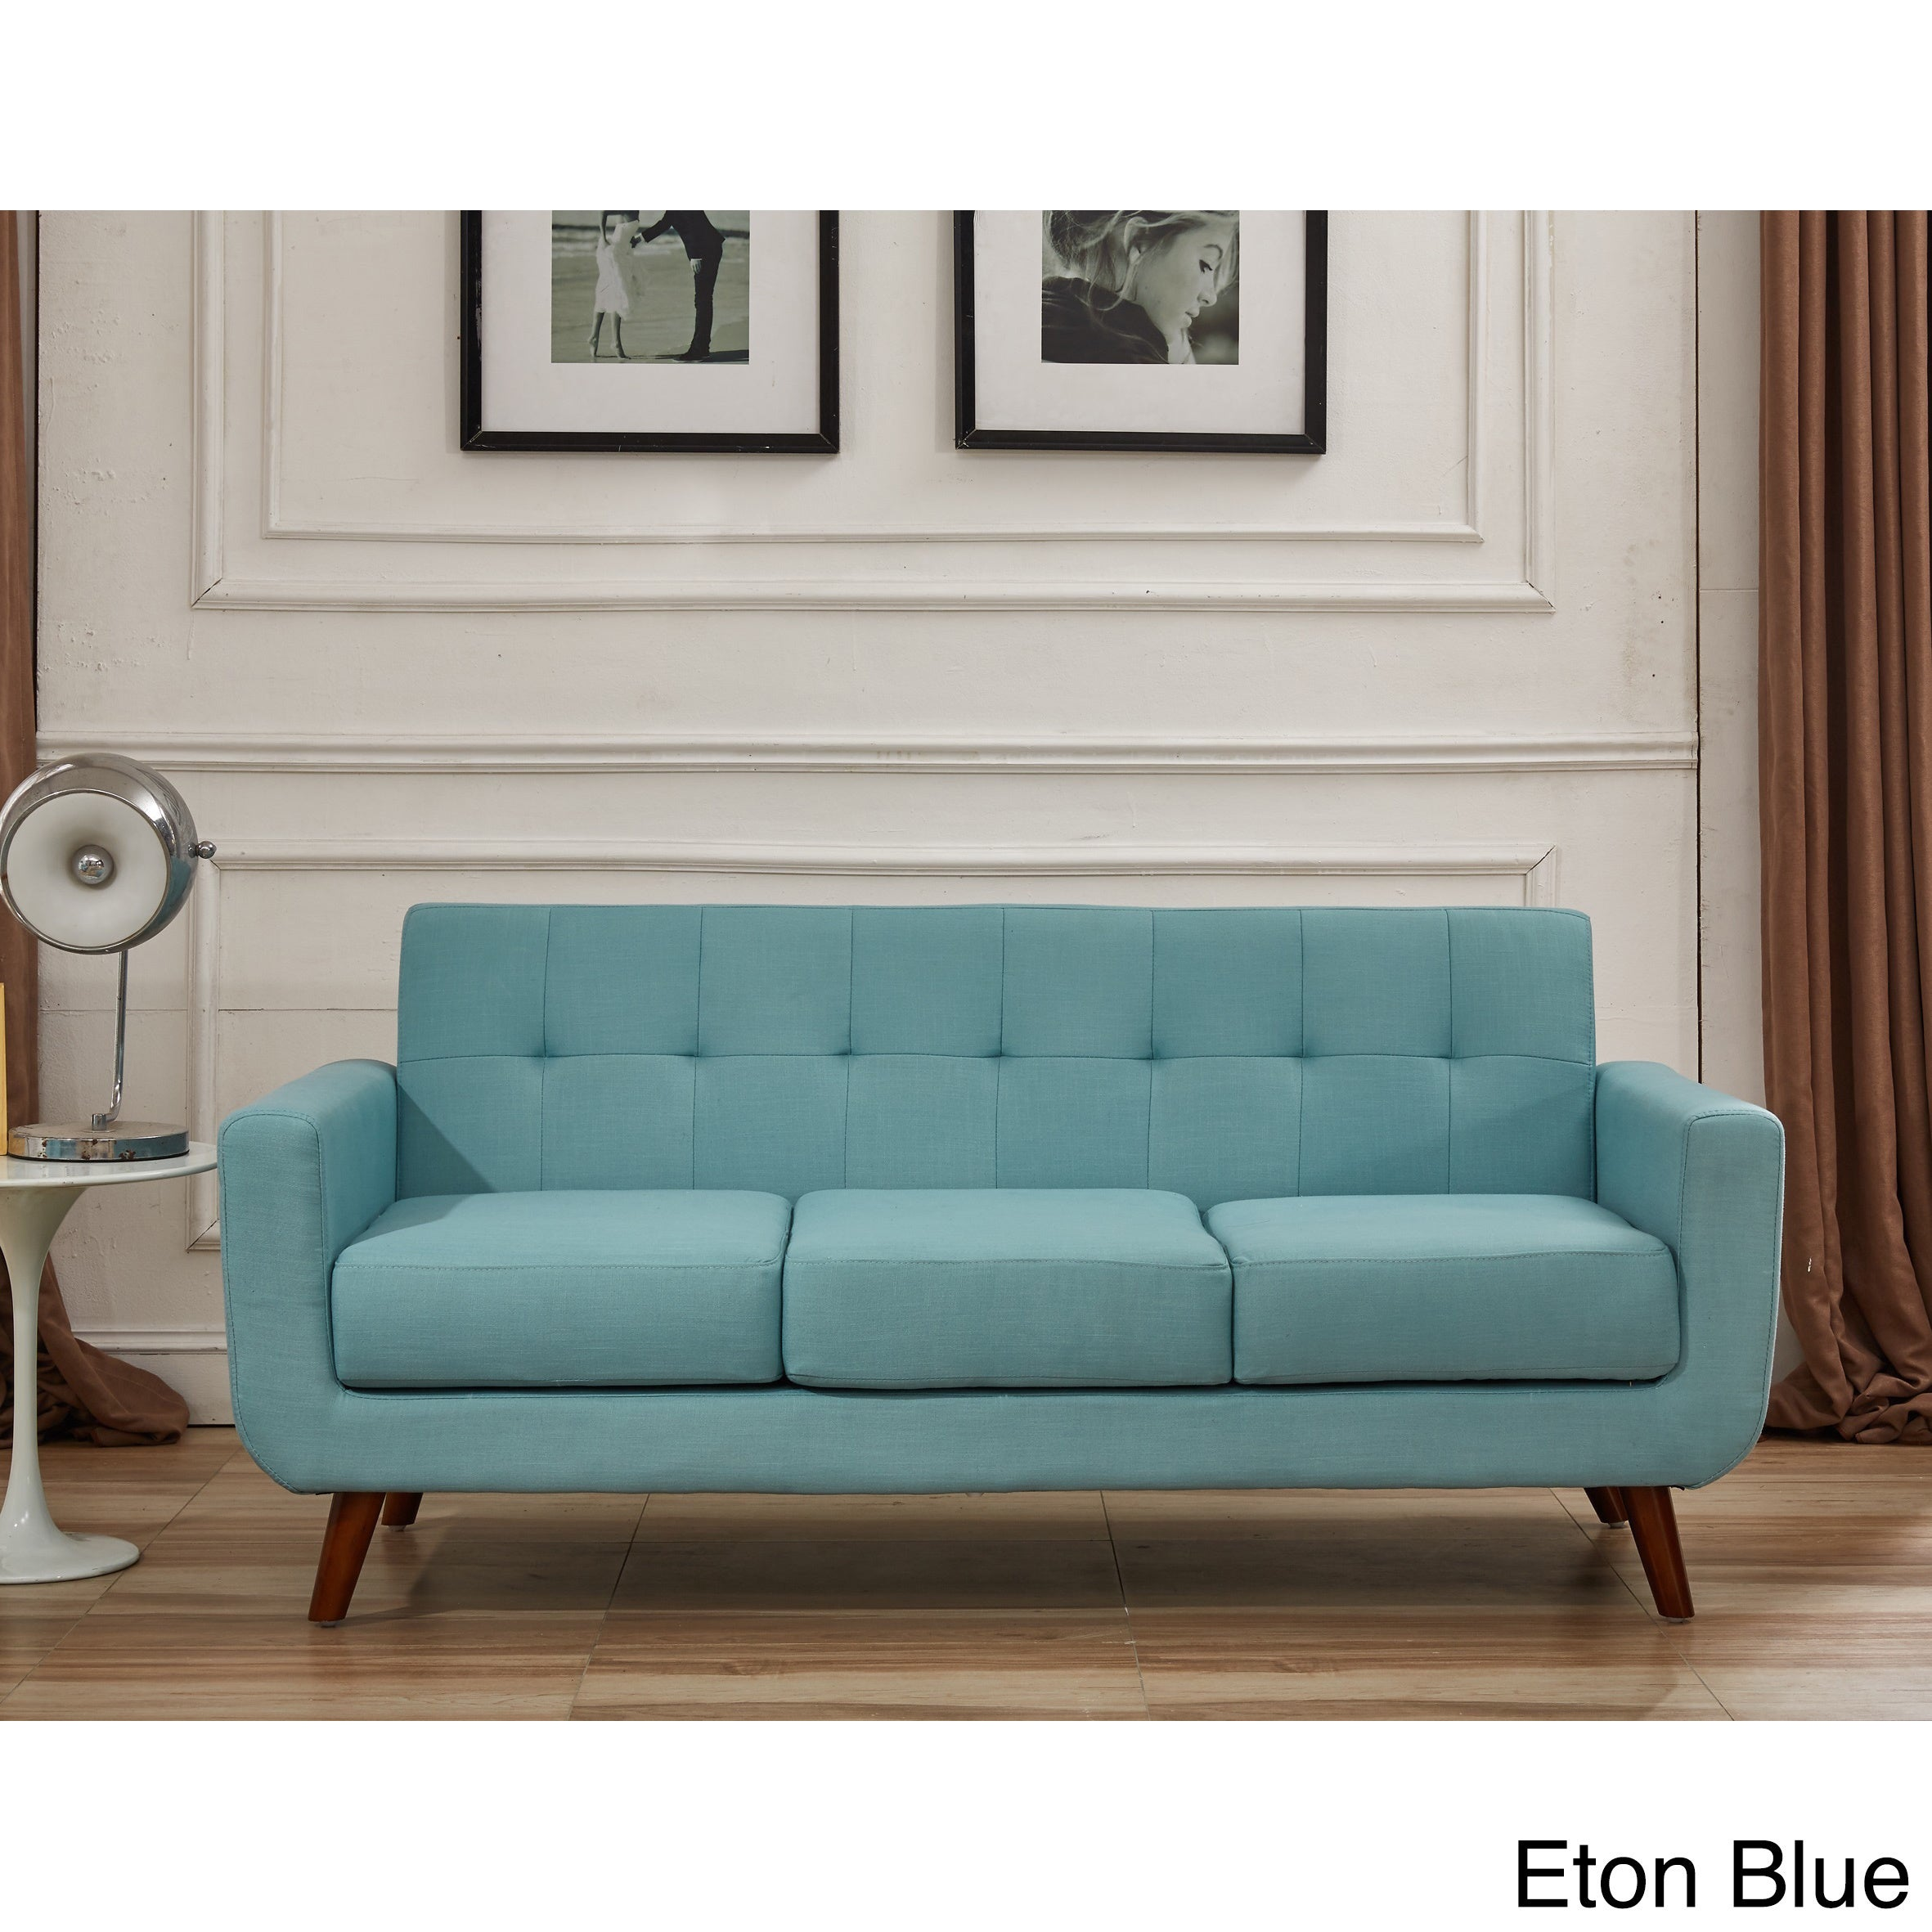 furniture leisure gosun af shopping chair living ac online teal c room